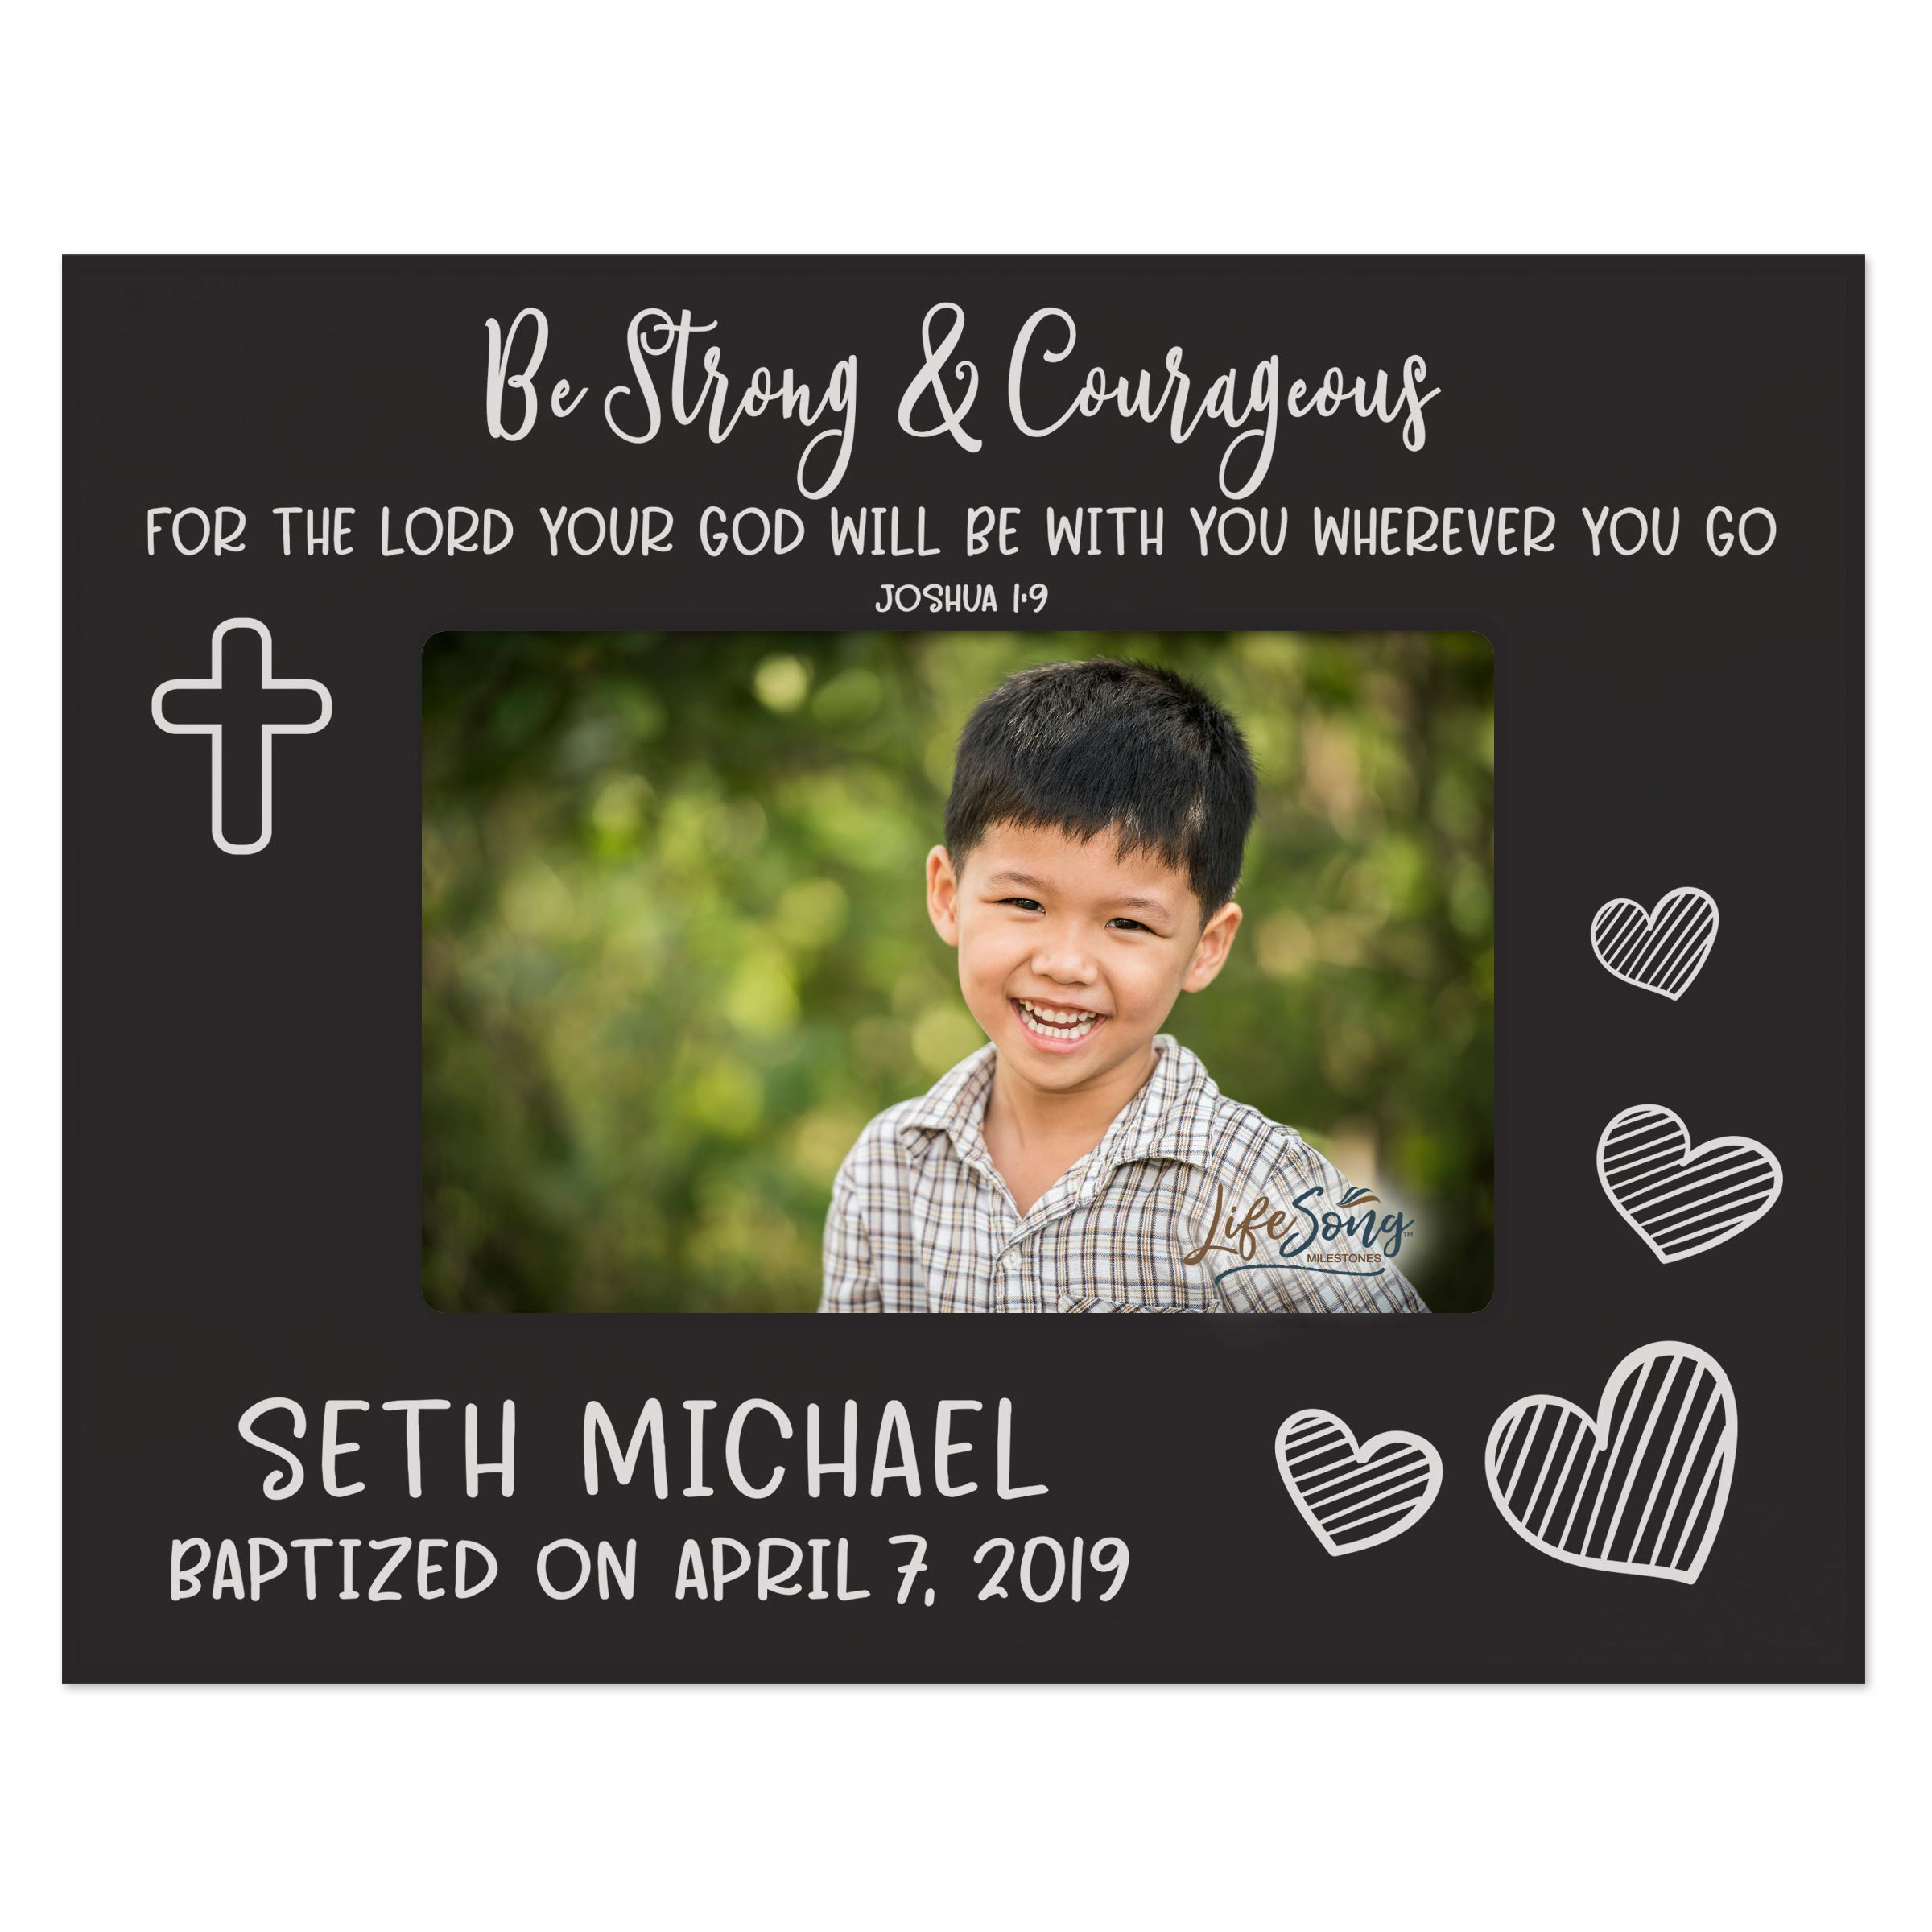 LifeSong Milestones 1st Holy Communion Baptism Photo Frame Baby Baptism Gifts for Boys and Girls Blessing for Child 8'' x 10'' Picture Frame Holds 4'' x 6'' Photo - Strong & Courageous (Black)